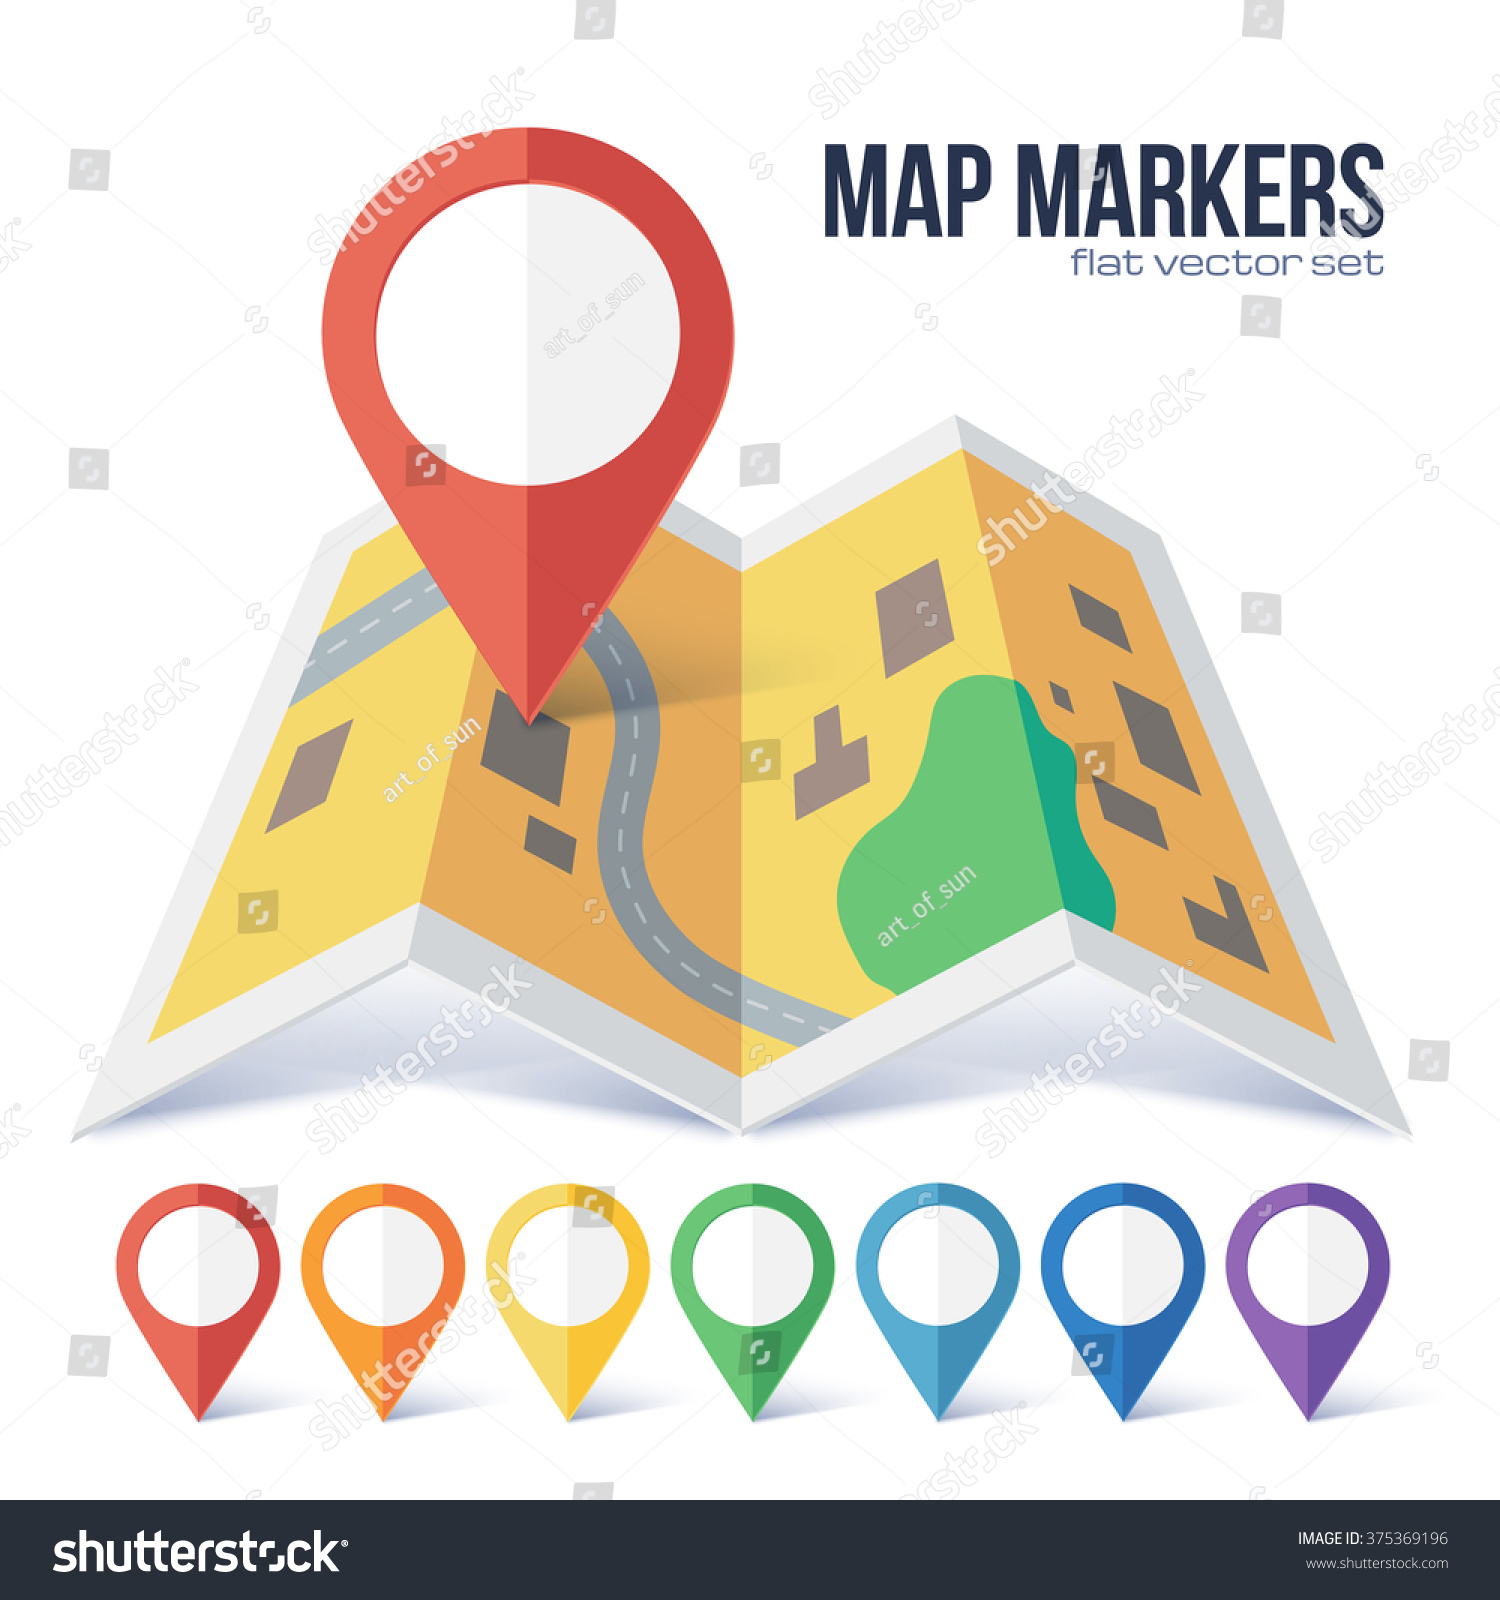 Red Vector Map Point Marker On Stock Vector 375369196 - Shutterstock